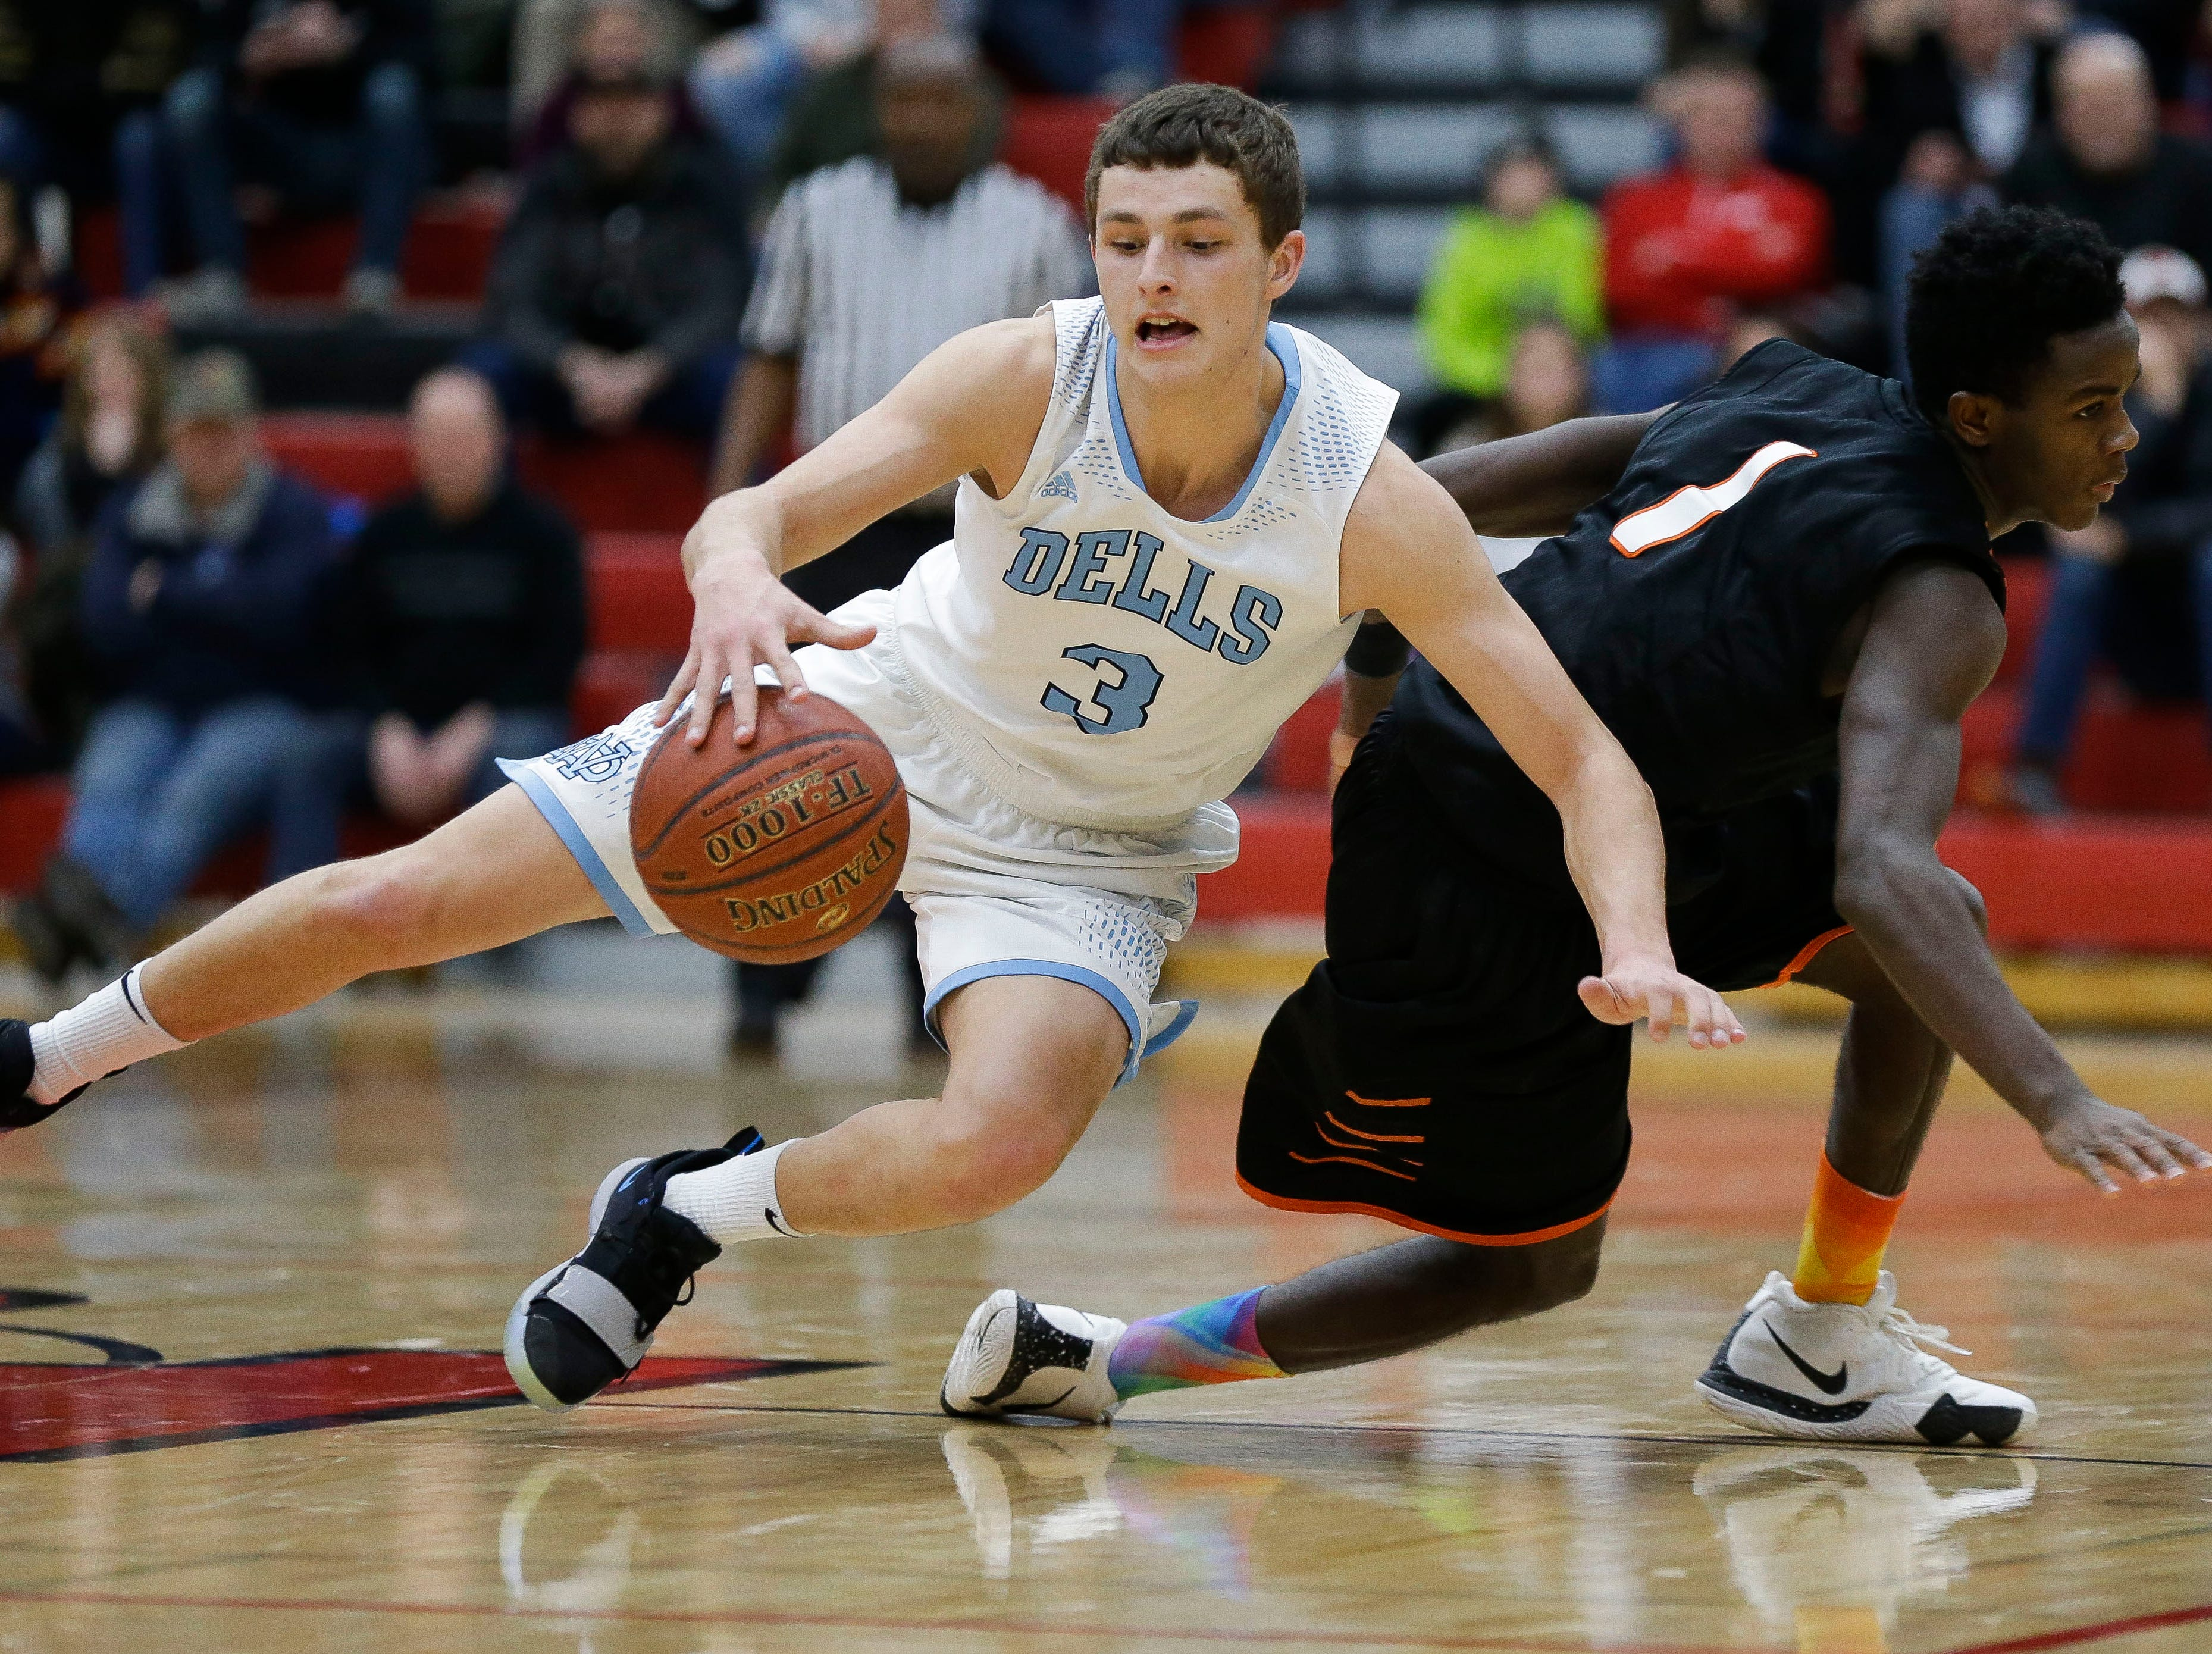 Wisconsin Dells' Brett Hirst (3) keeps his dribble as he falls to the floor against Stratford in a Division 3 sectional semifinal on Thursday, March 7, 2019, at Stevens Point Area High School in Stevens Point, Wis. Tork Mason/USA TODAY NETWORK-Wisconsin